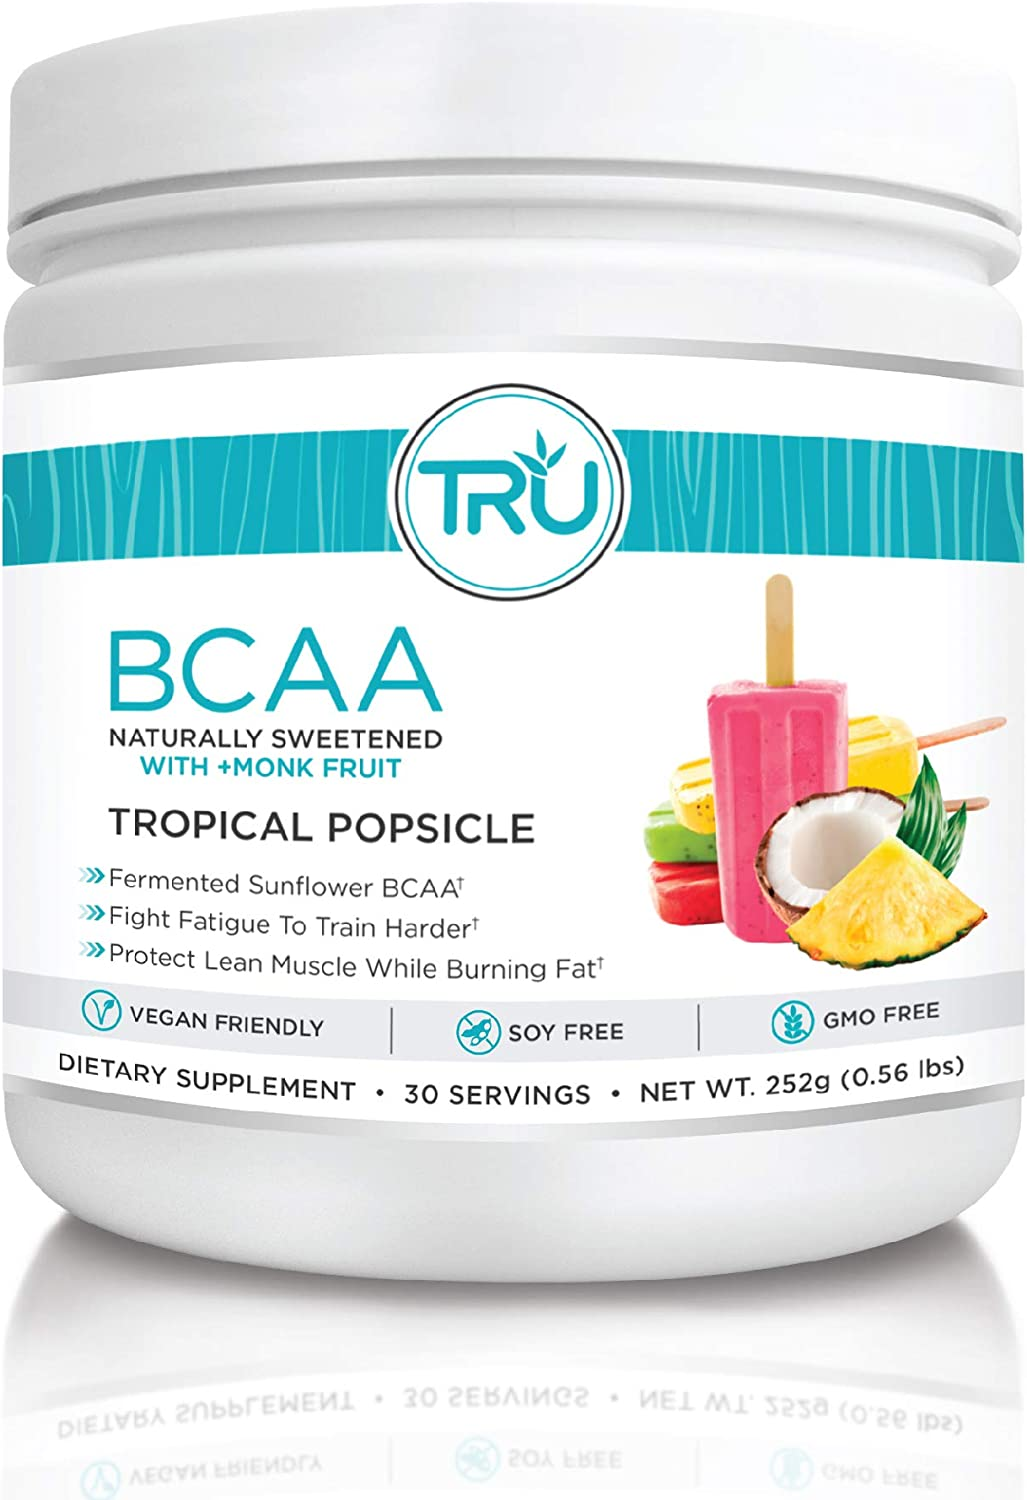 TRU BCAA Powder, Plant Based Branched Chain Amino Acids, Vegan Friendly, Zero Calories, No Artificial Sweeteners or Dyes, Improve Fat Loss 30 Servings, Tropical Popsicle